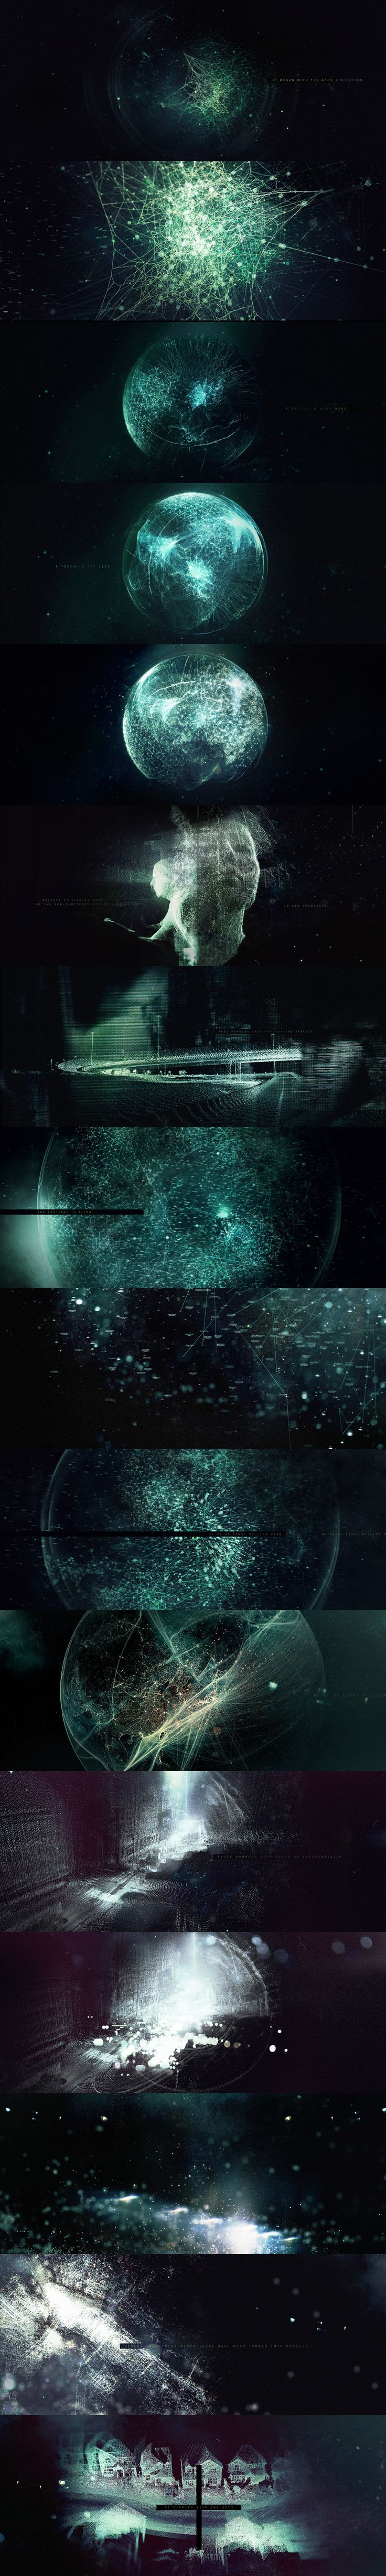 Really effective Graphics Sequence for movie Dawn of the planet of apes. This movie was directed by Matt Reeves This sequence illustrates how infection spreads and how it evolves in Apes.